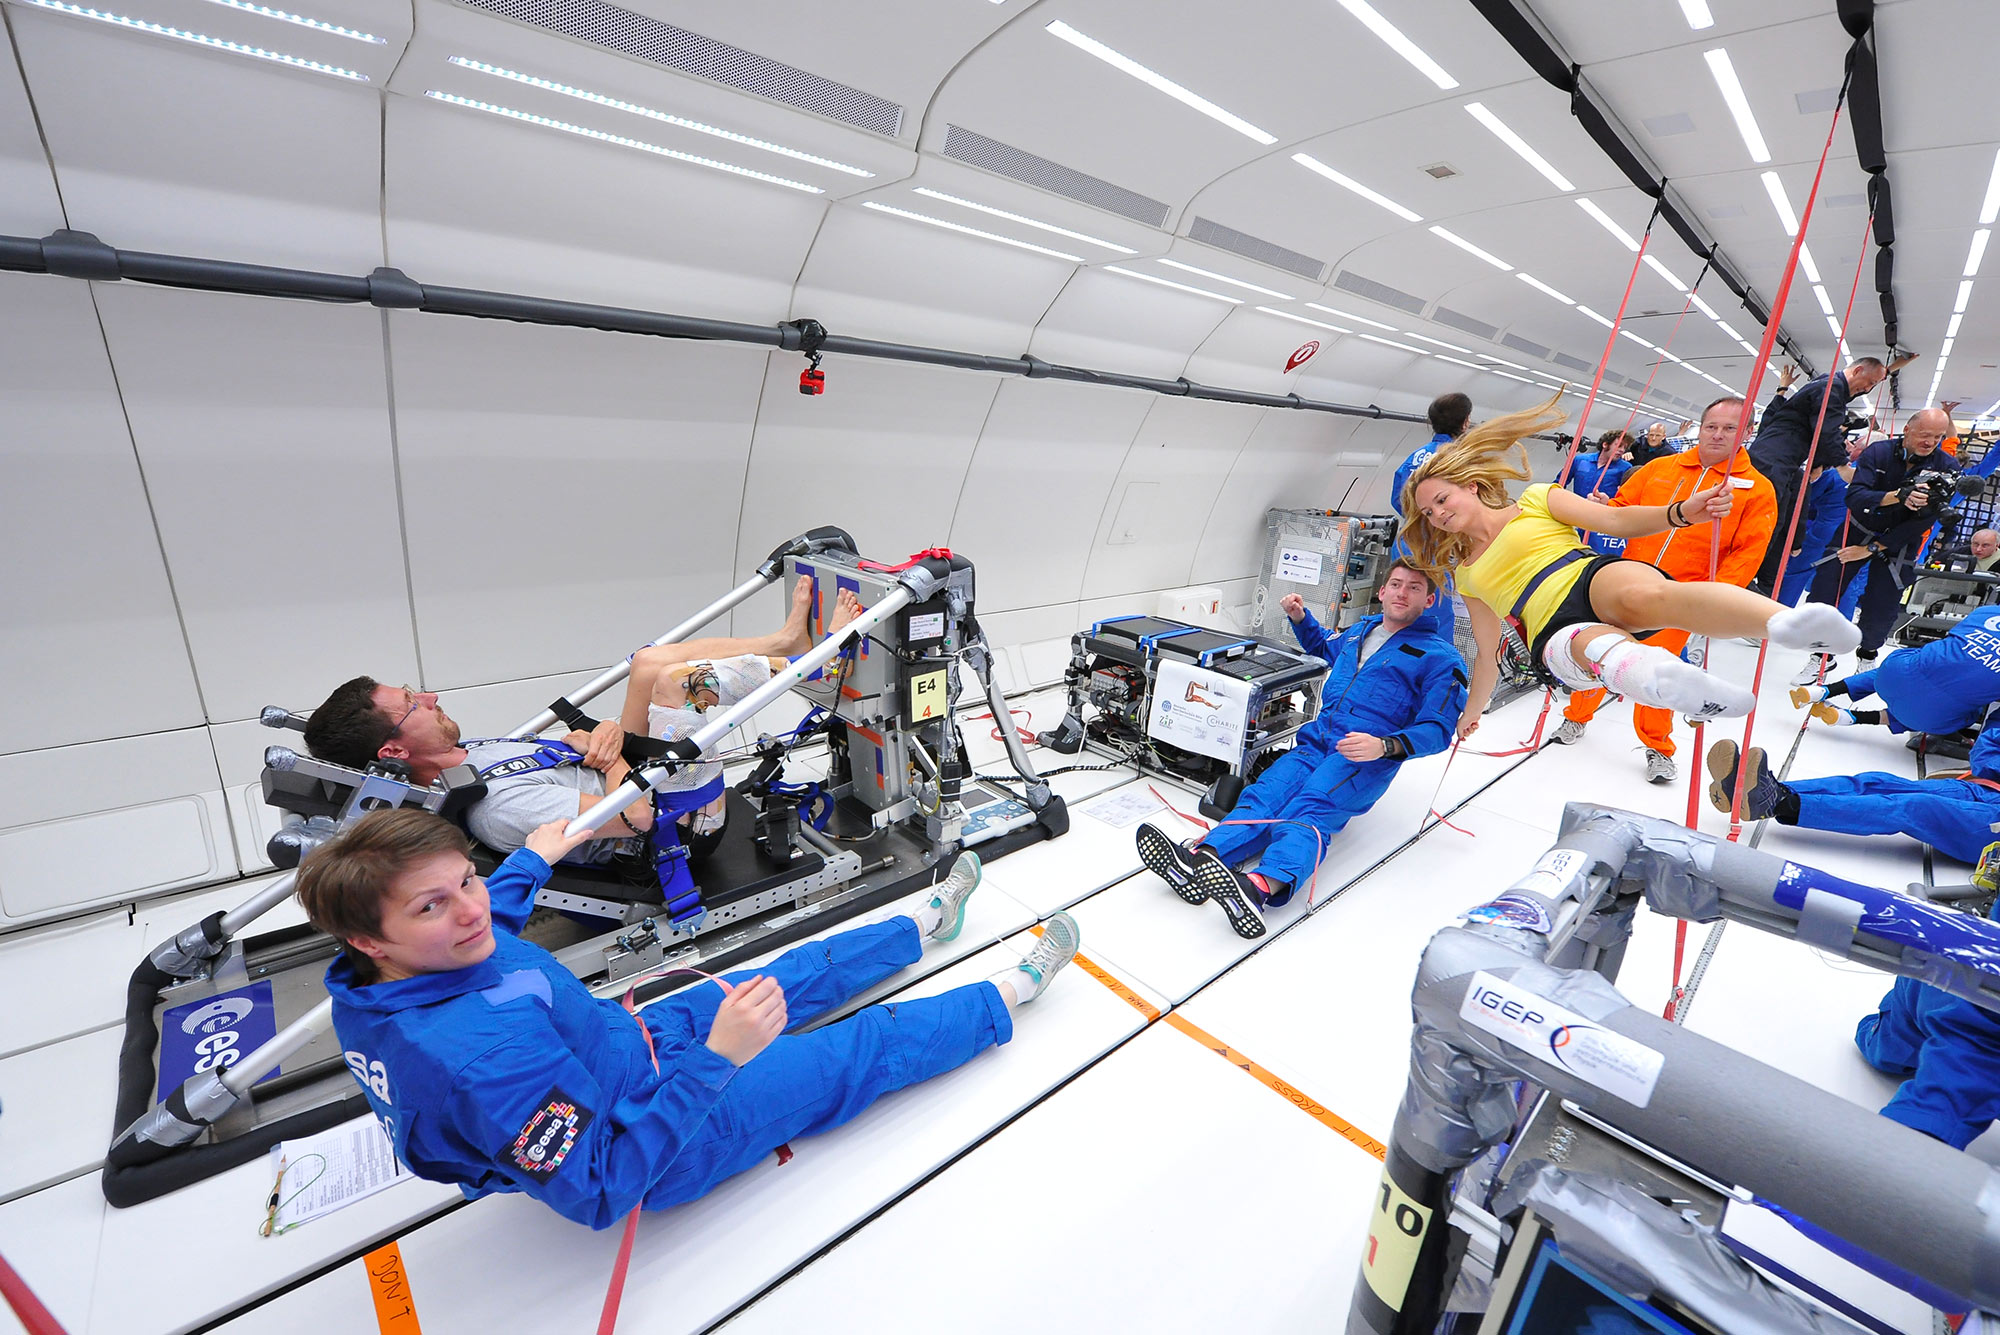 Study of muscular strength in microgravity